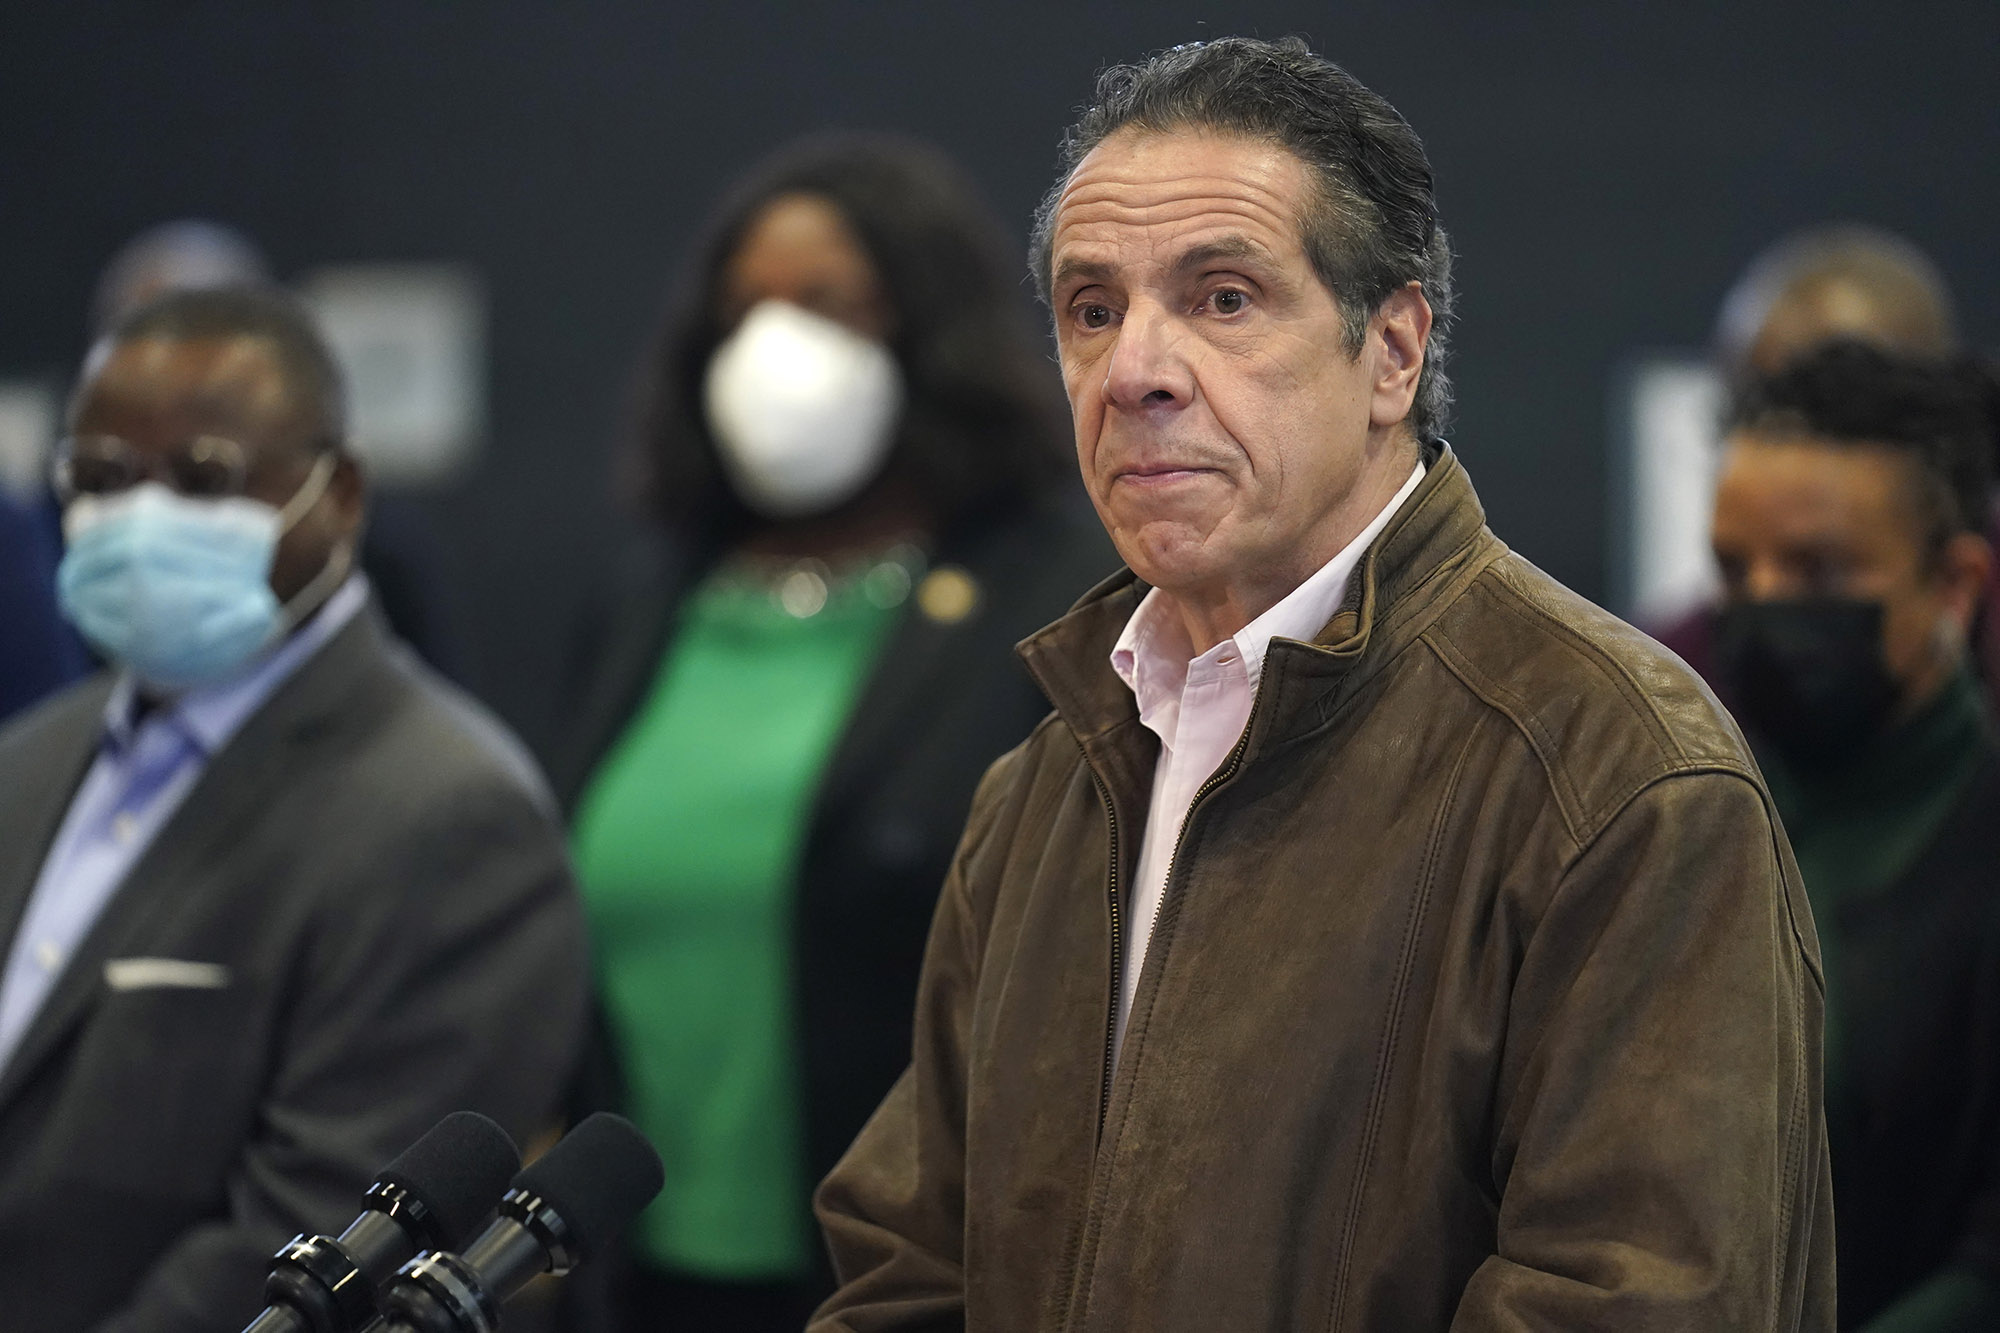 Bill to repeal Cuomo's emergency executive powers reaches governor's desk